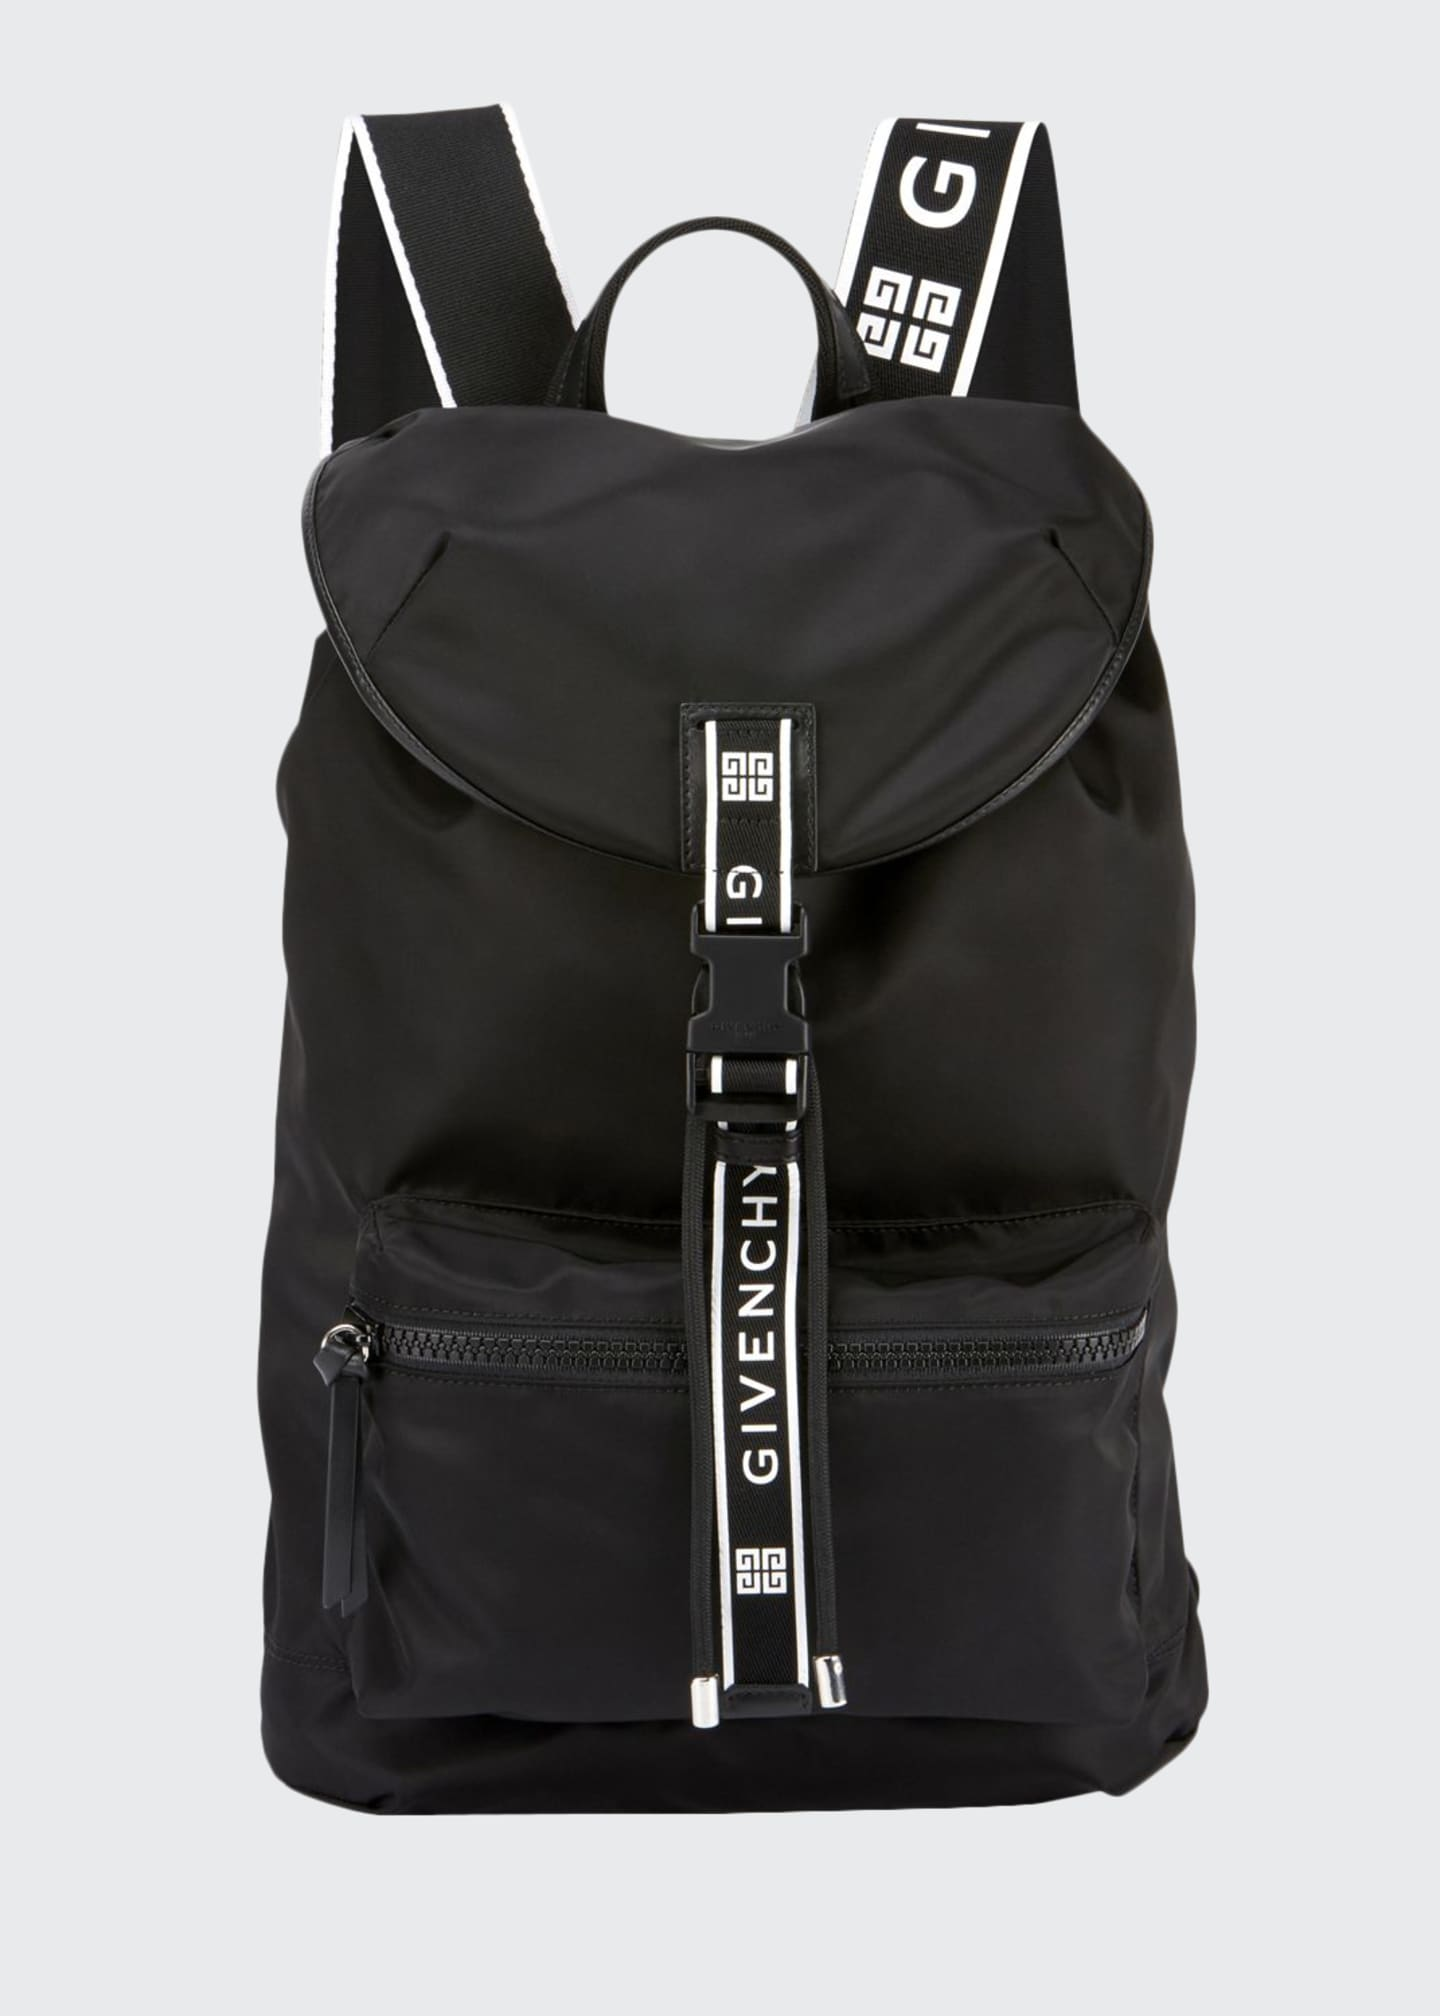 Givenchy Men's Light 3 4G Canvas Backpack